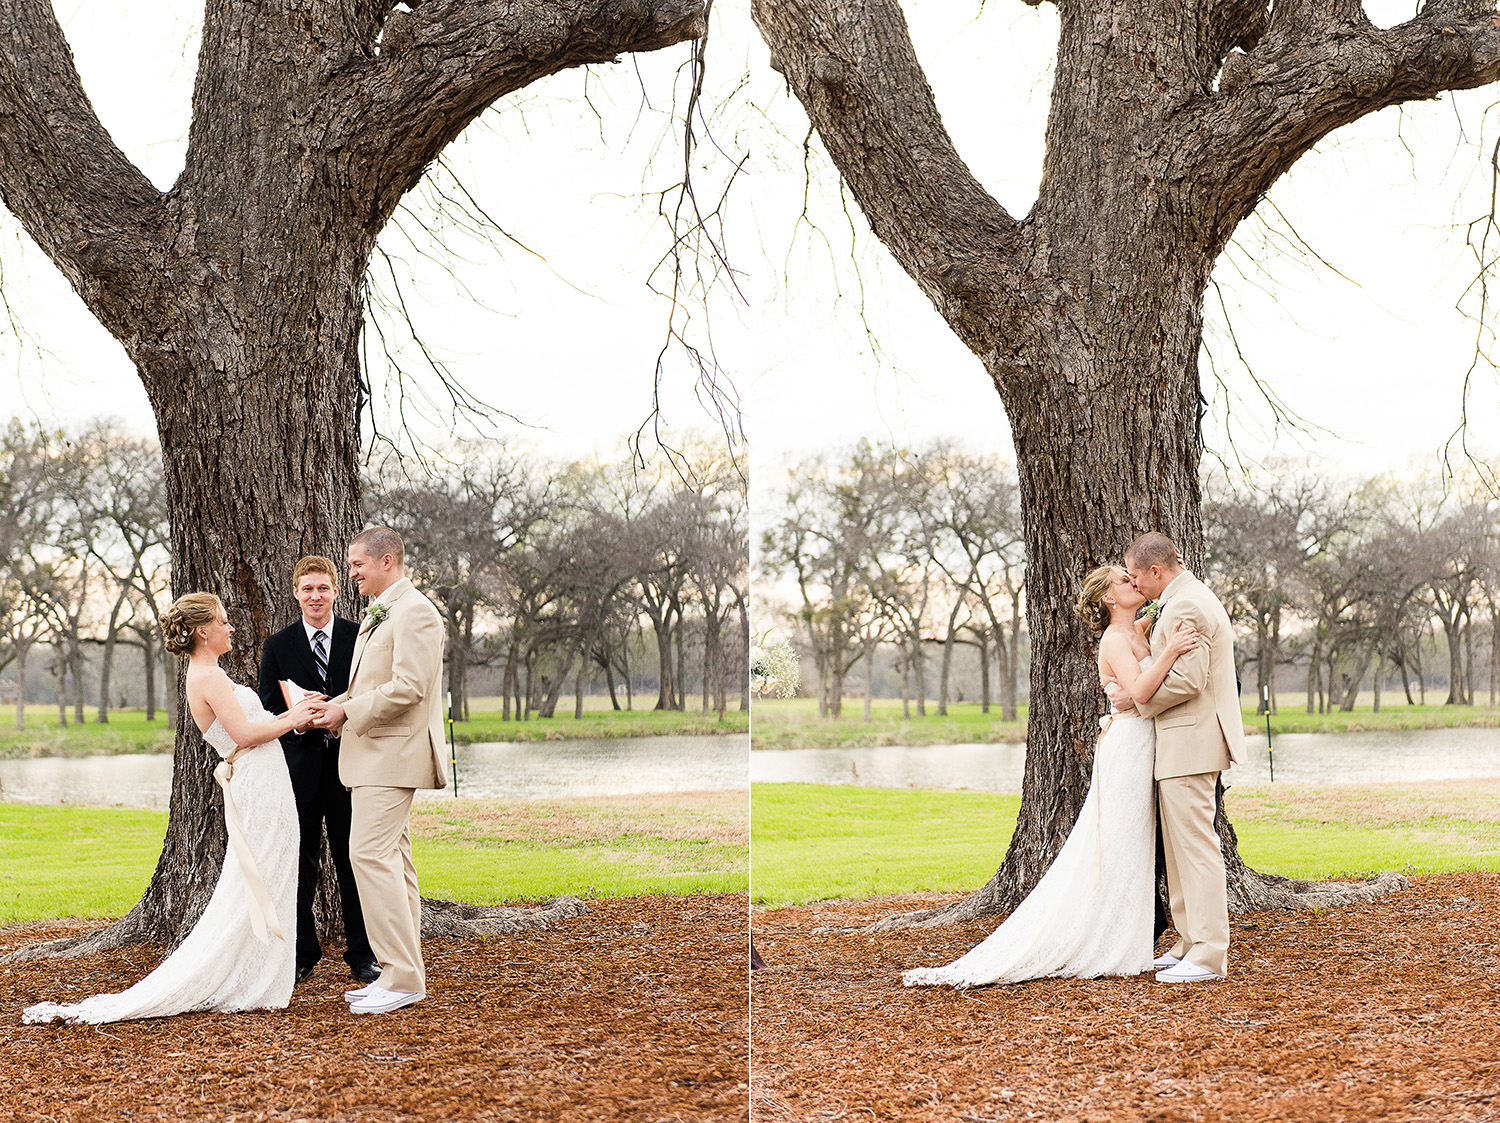 This wedding was the first weekend of March. The grass had sort of started to turn green but the trees were still wintery looking. This ceremony was about 1.5 hours before sunset and there was quite a bit of cloud cover. This would look much different in the summer/fall.